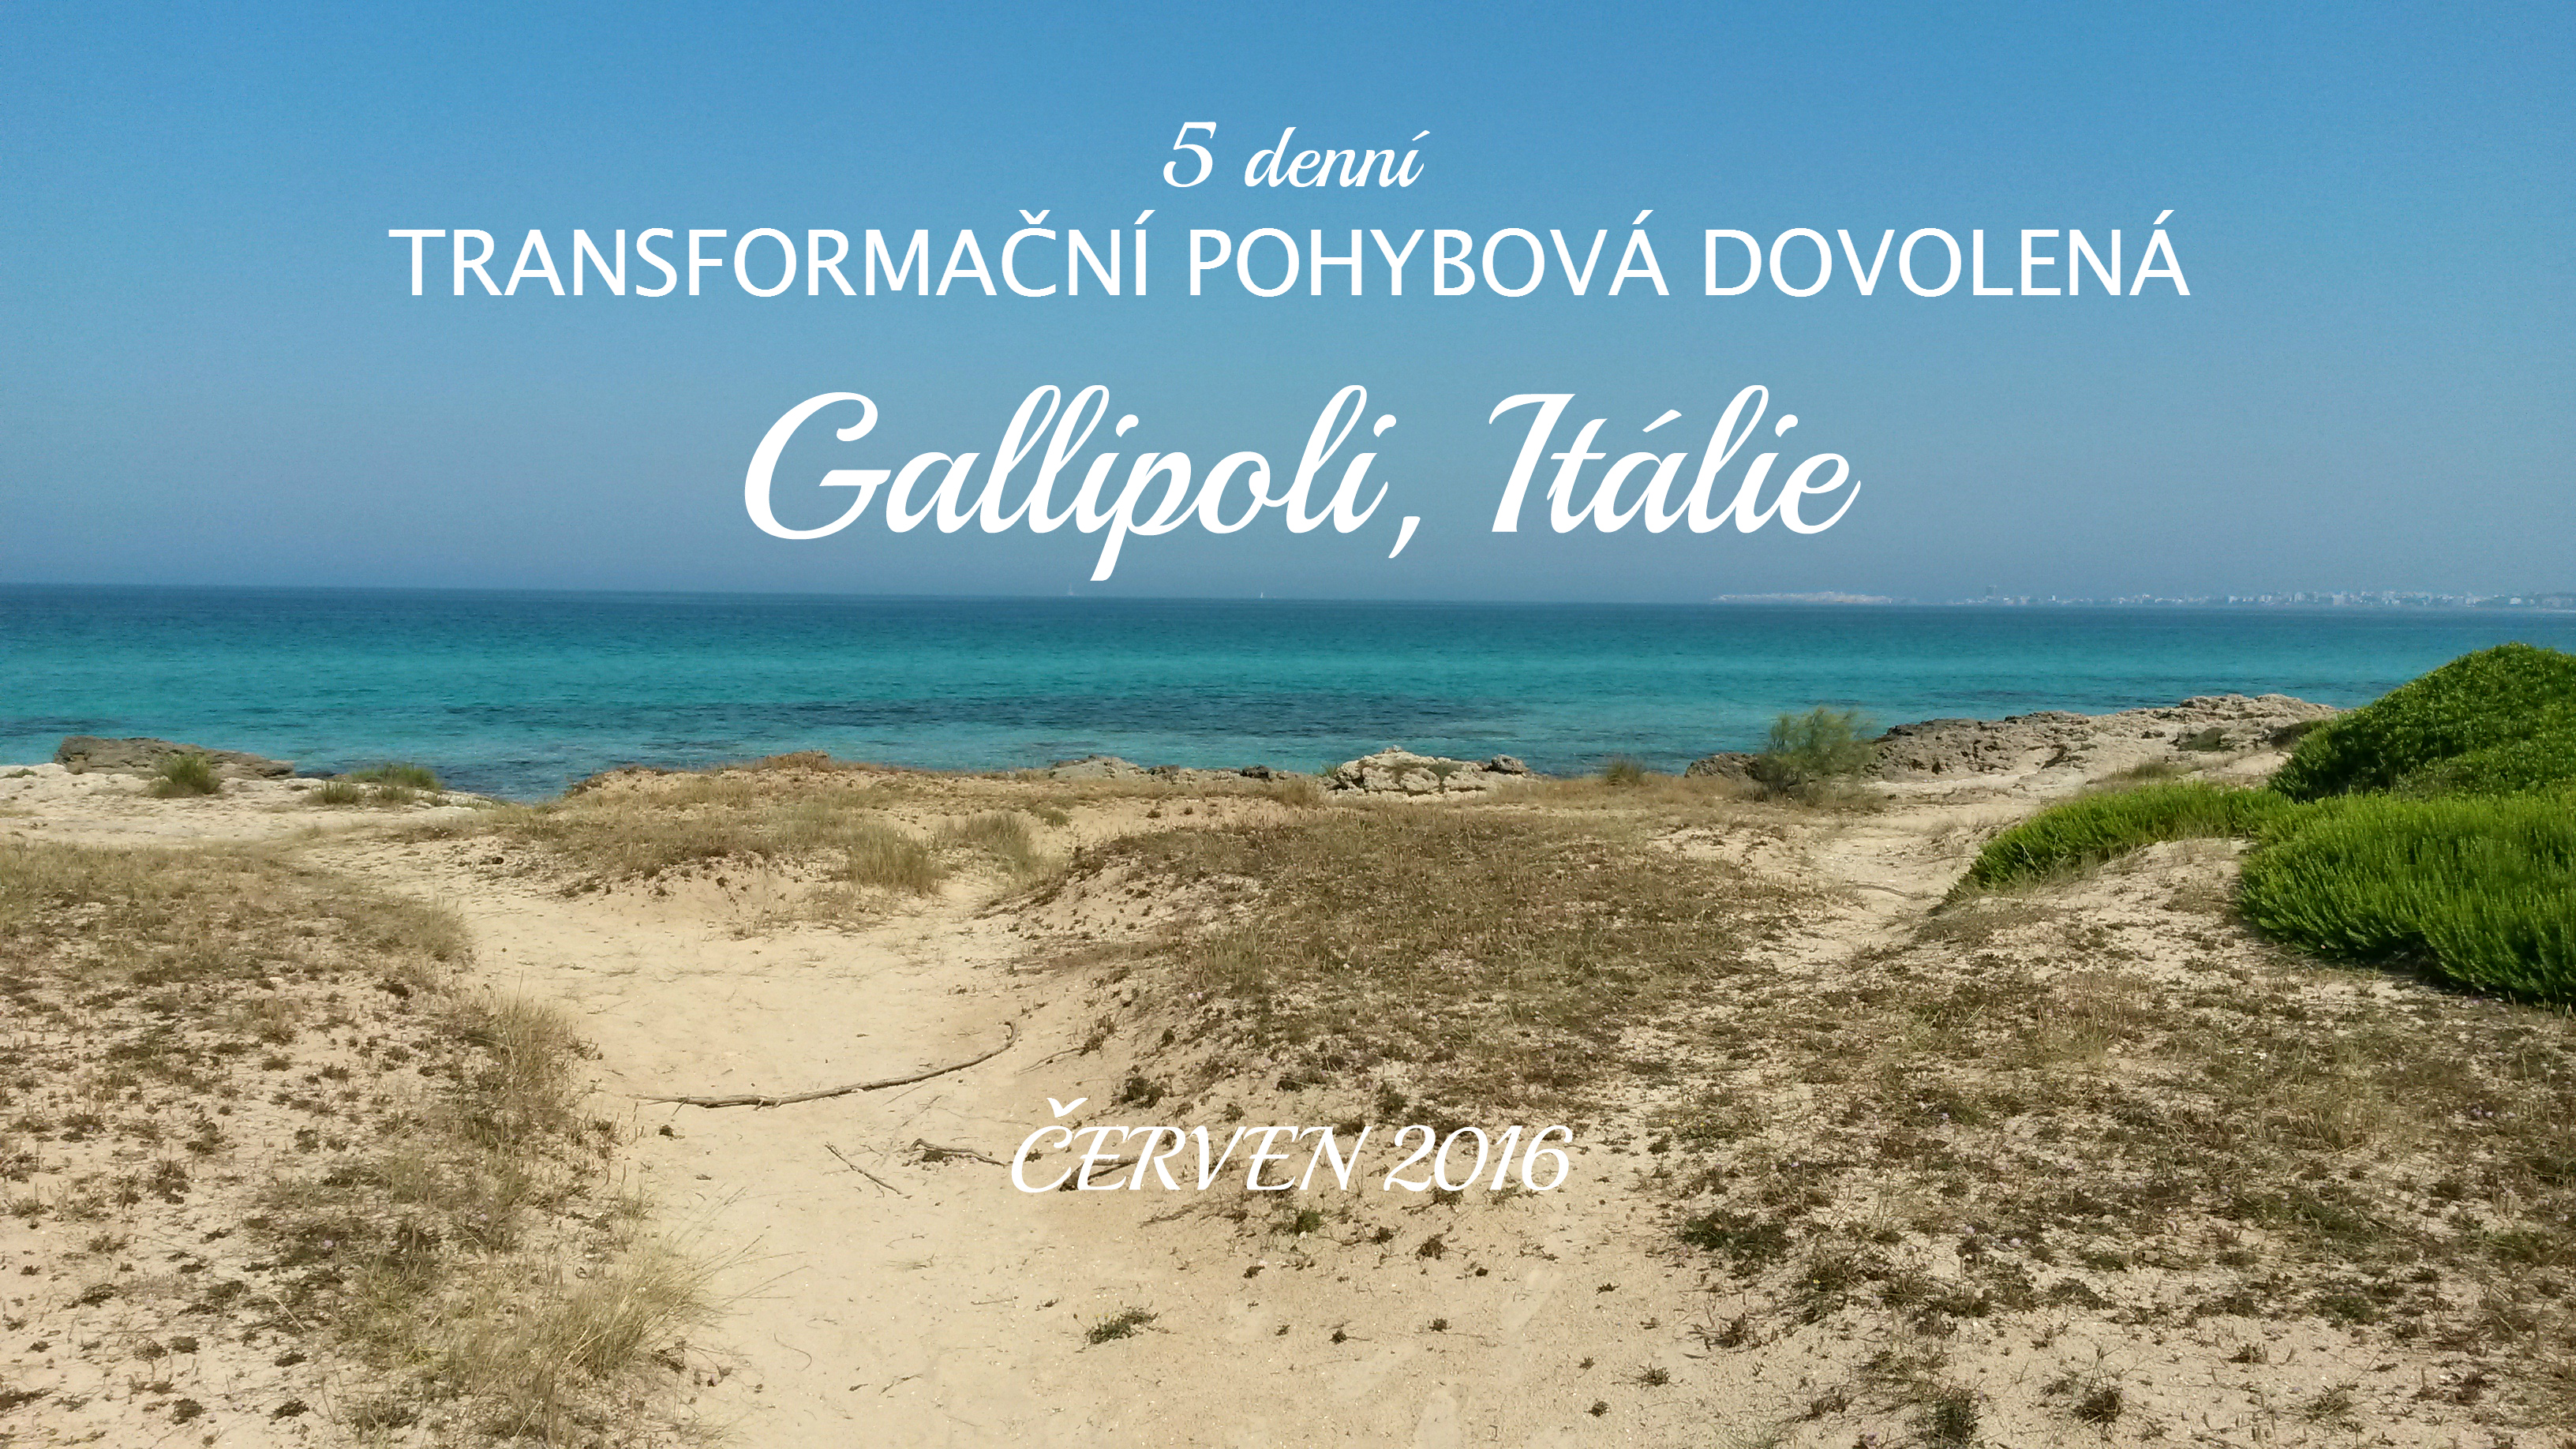 TPD Gallipoli červen 2016